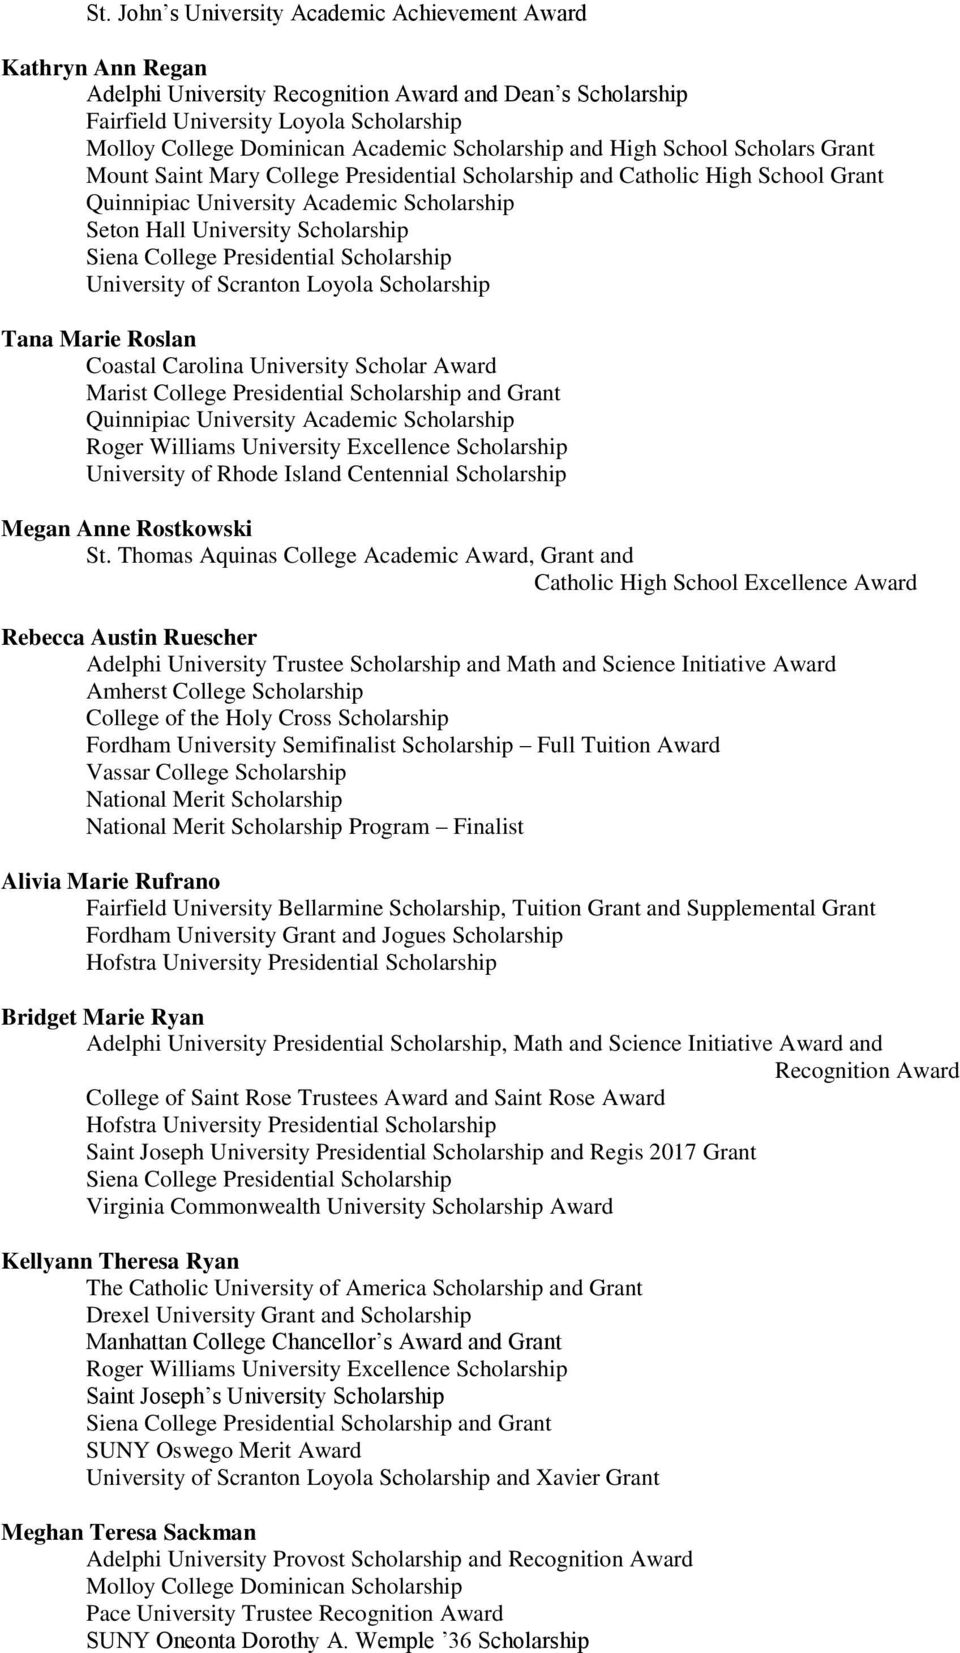 Class of 2013 Scholarships and Awards - PDF